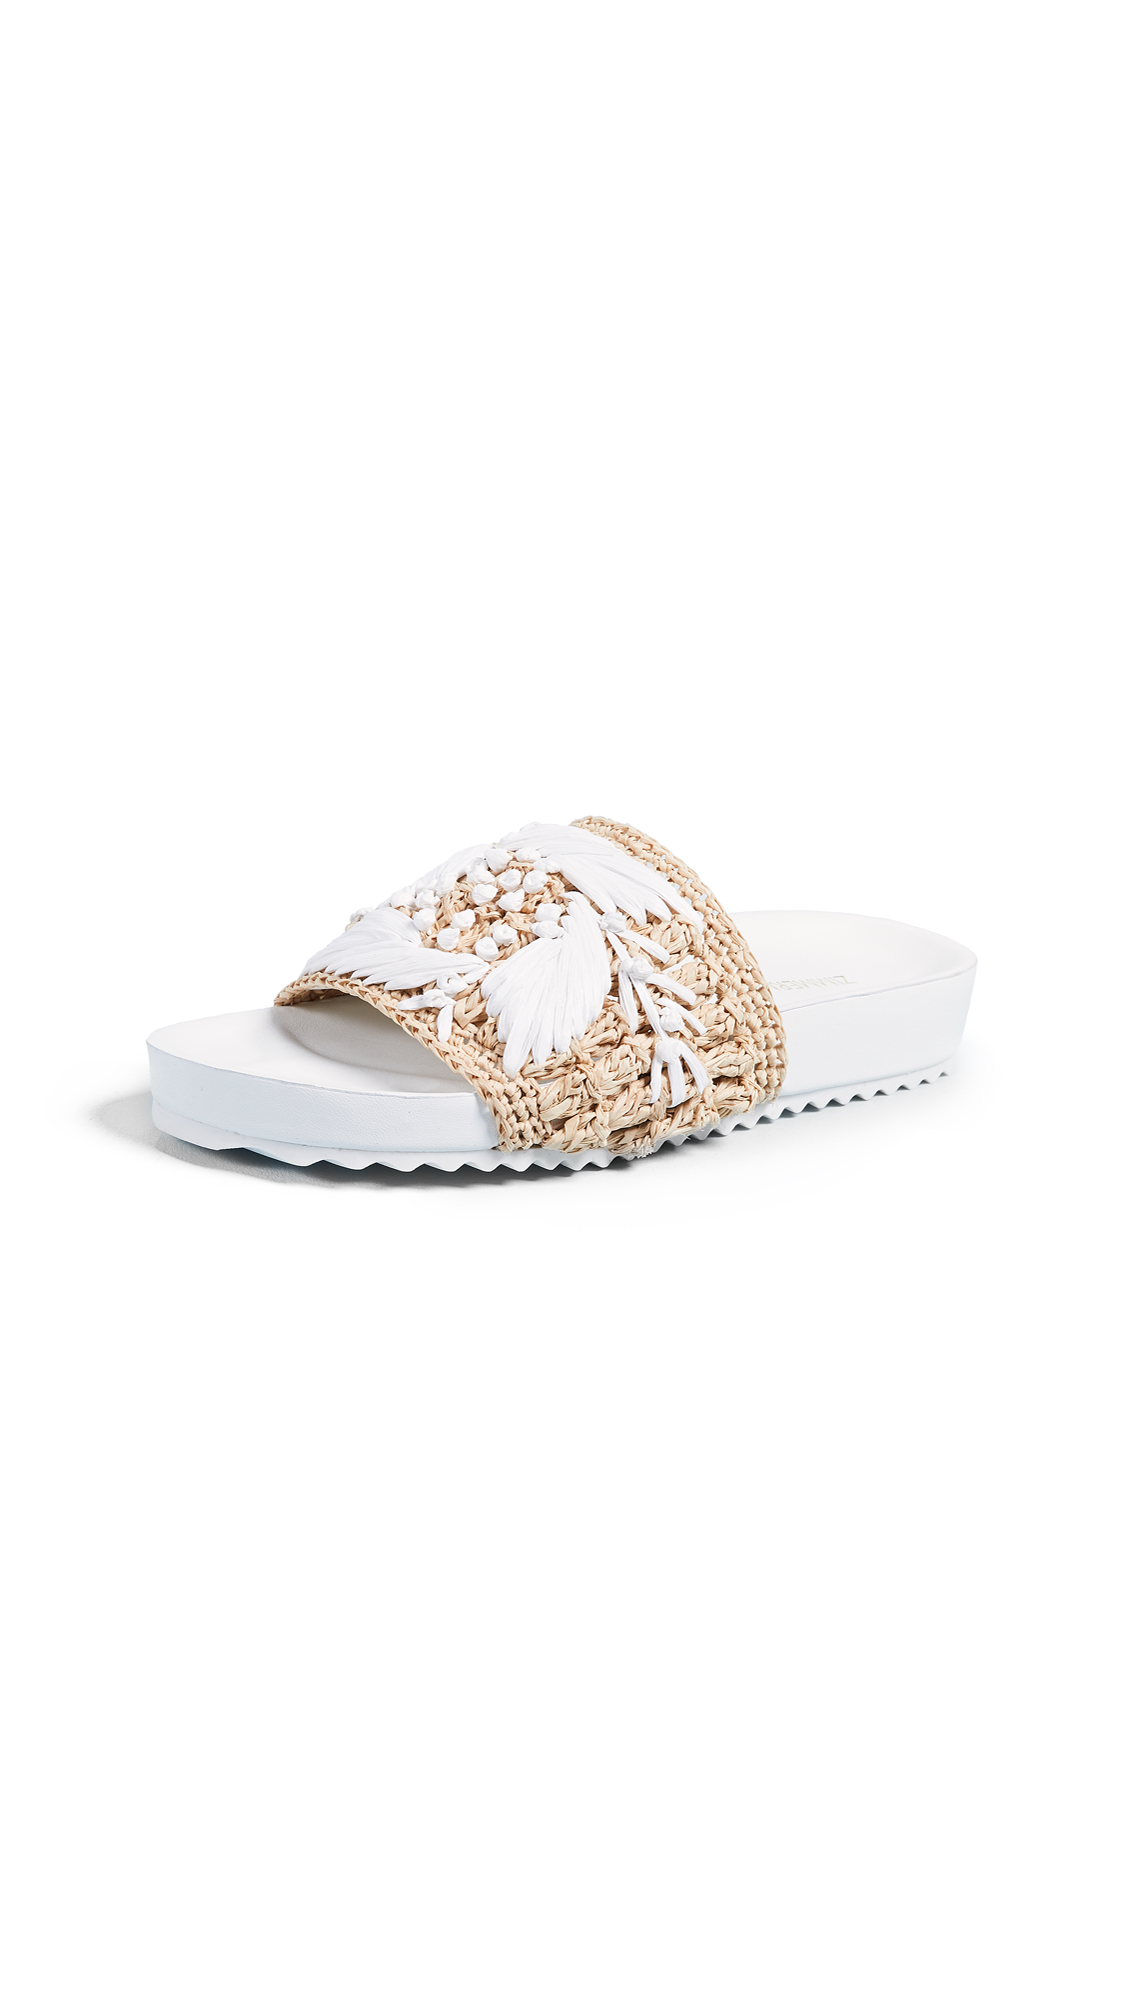 Zimmermann Raffia Pool Slides In Ivory